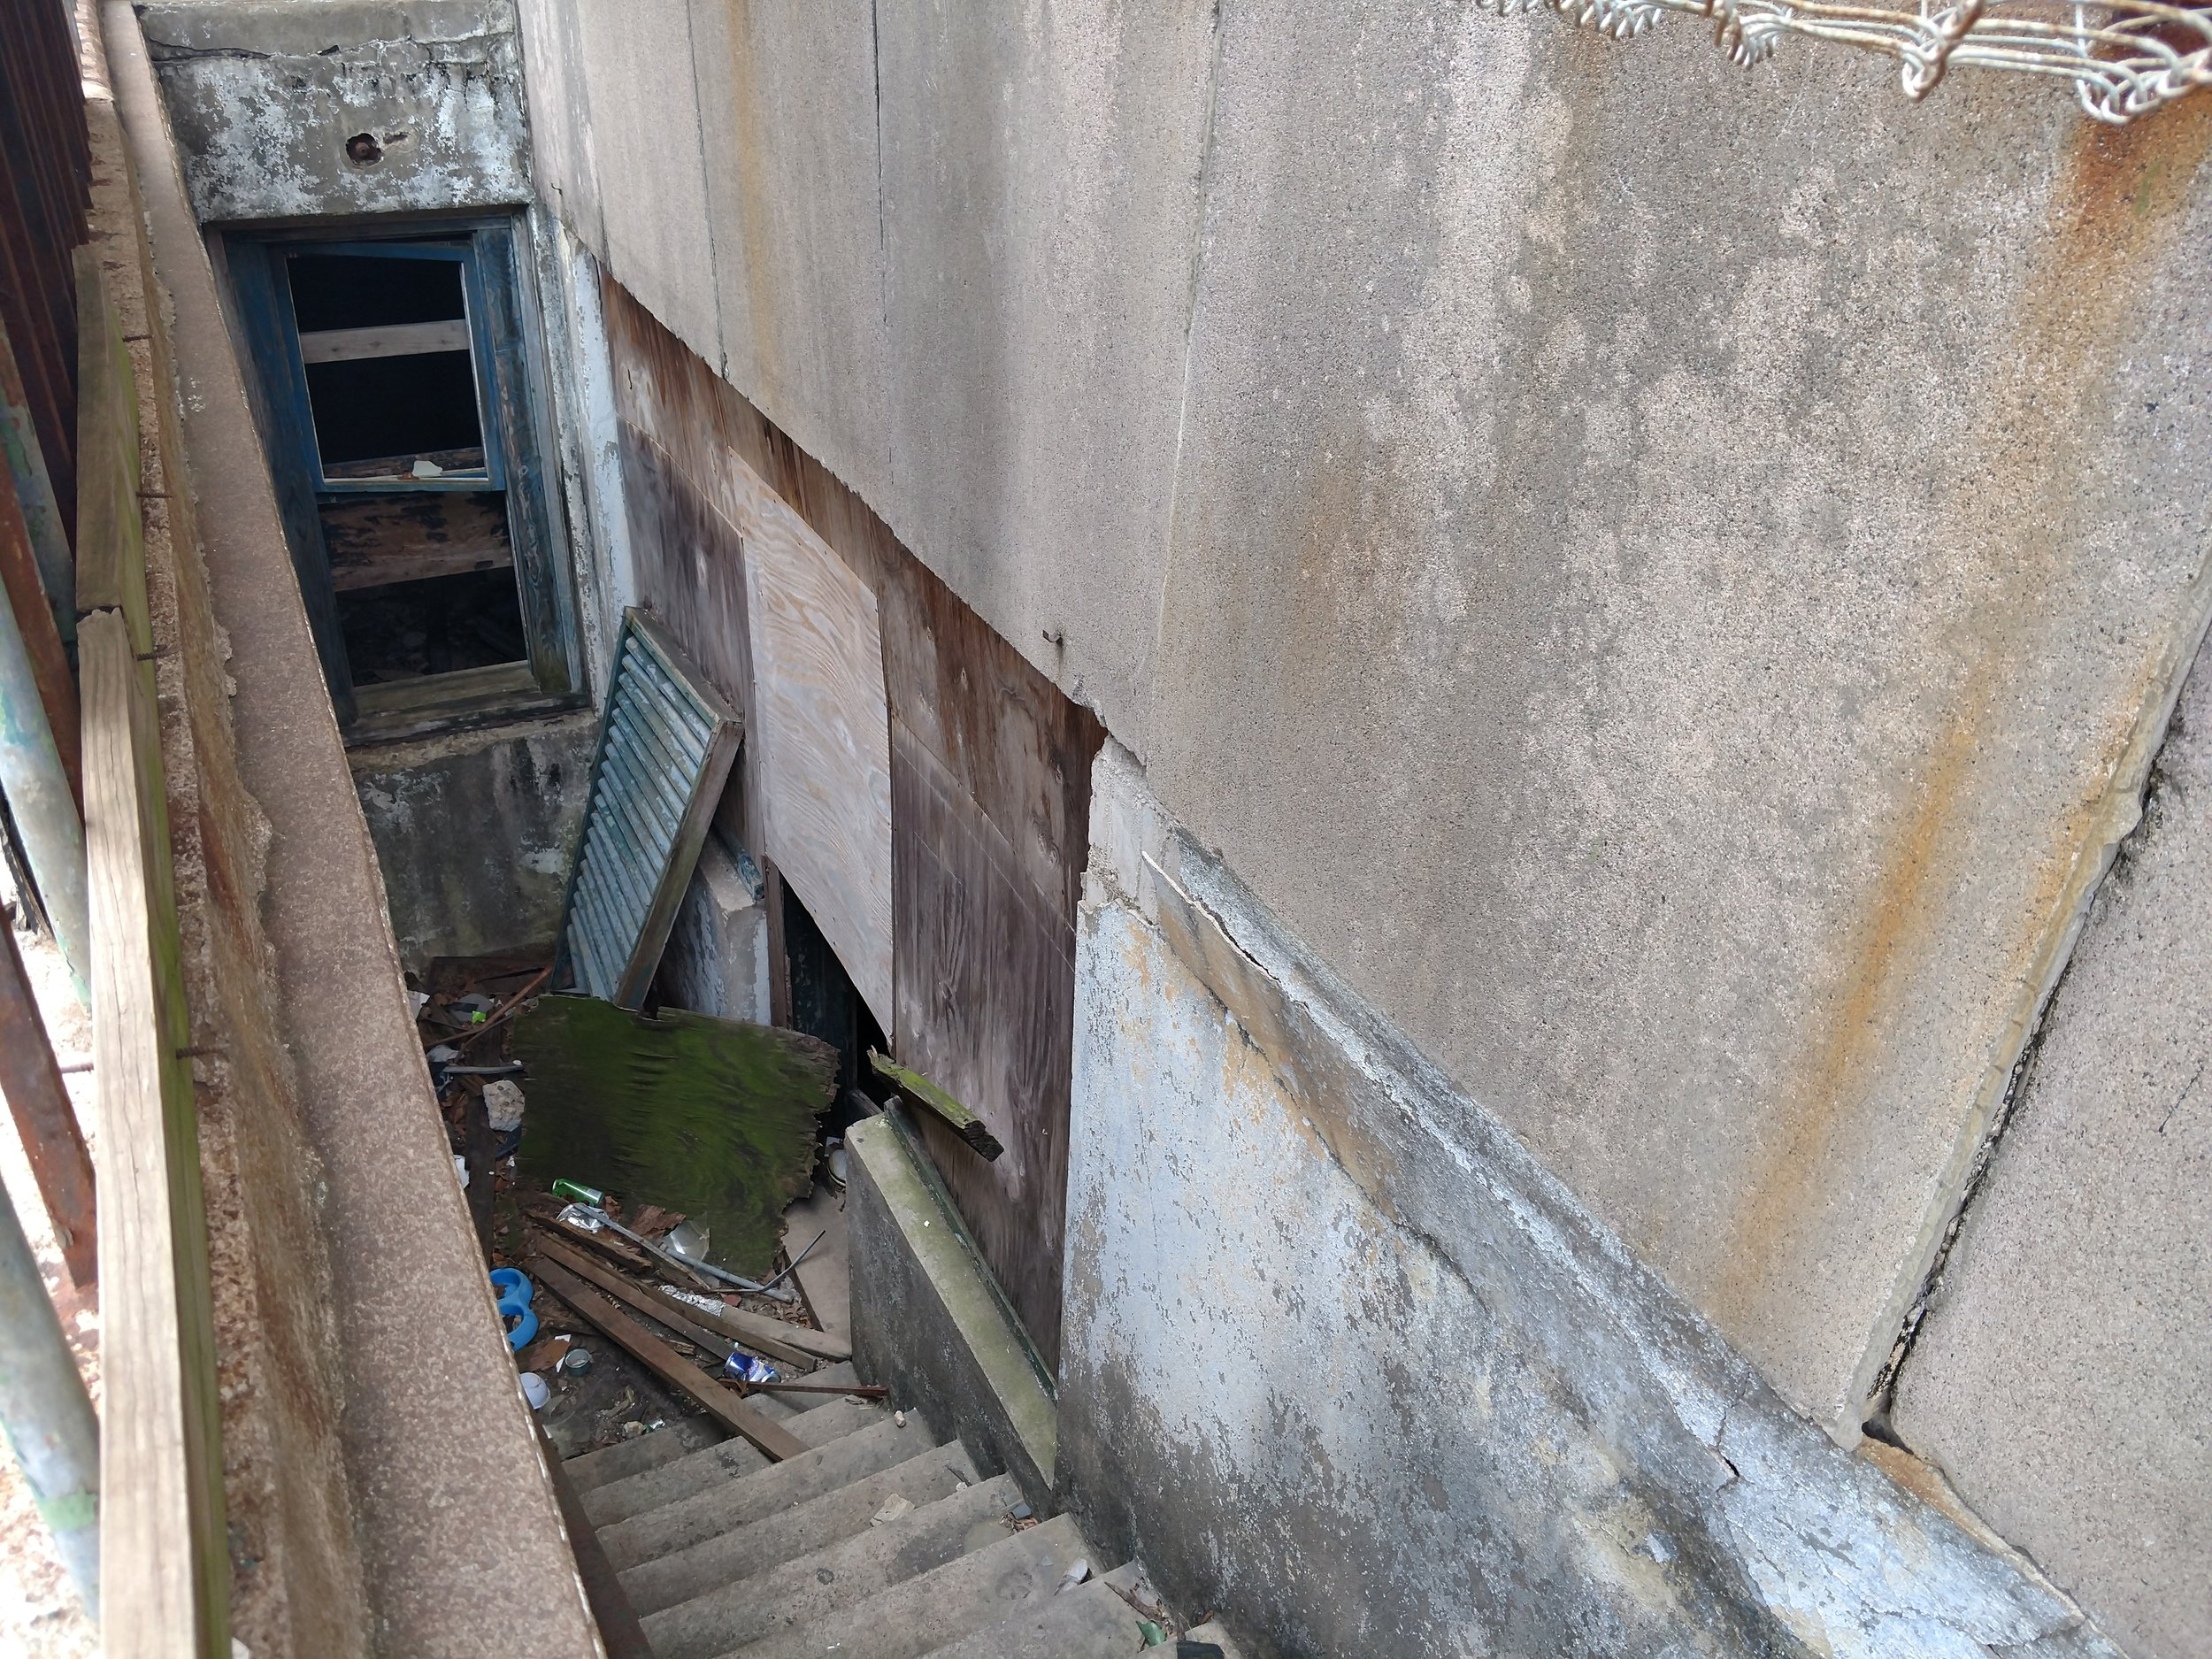 A view of one of the entrances going down below. There is fencing around it but it has been pulled back.